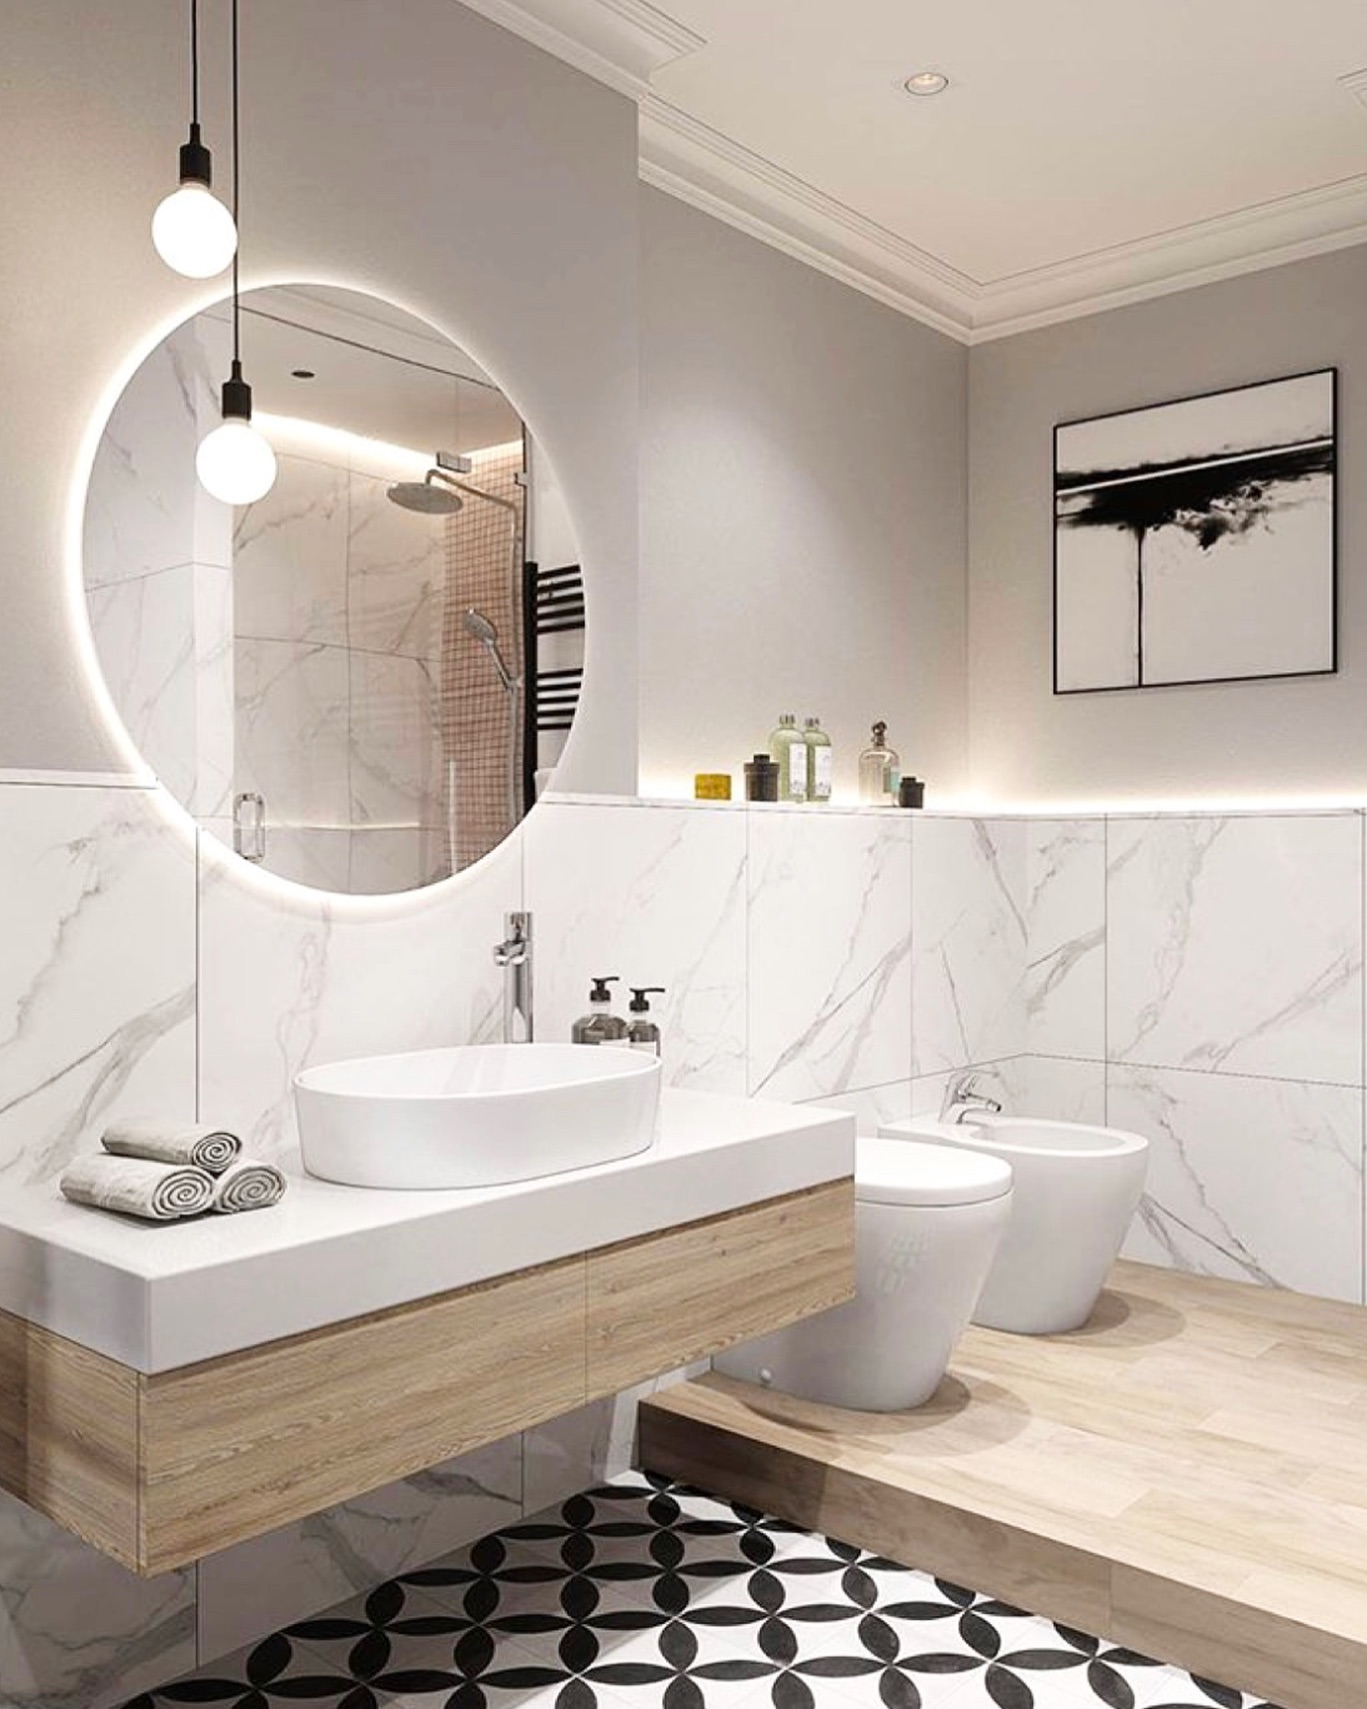 @dvdinteriordesign's cover photo for 'How 5 Tips for Your Dream Bath Can Make Your Life Better  — dvd Interior Design'